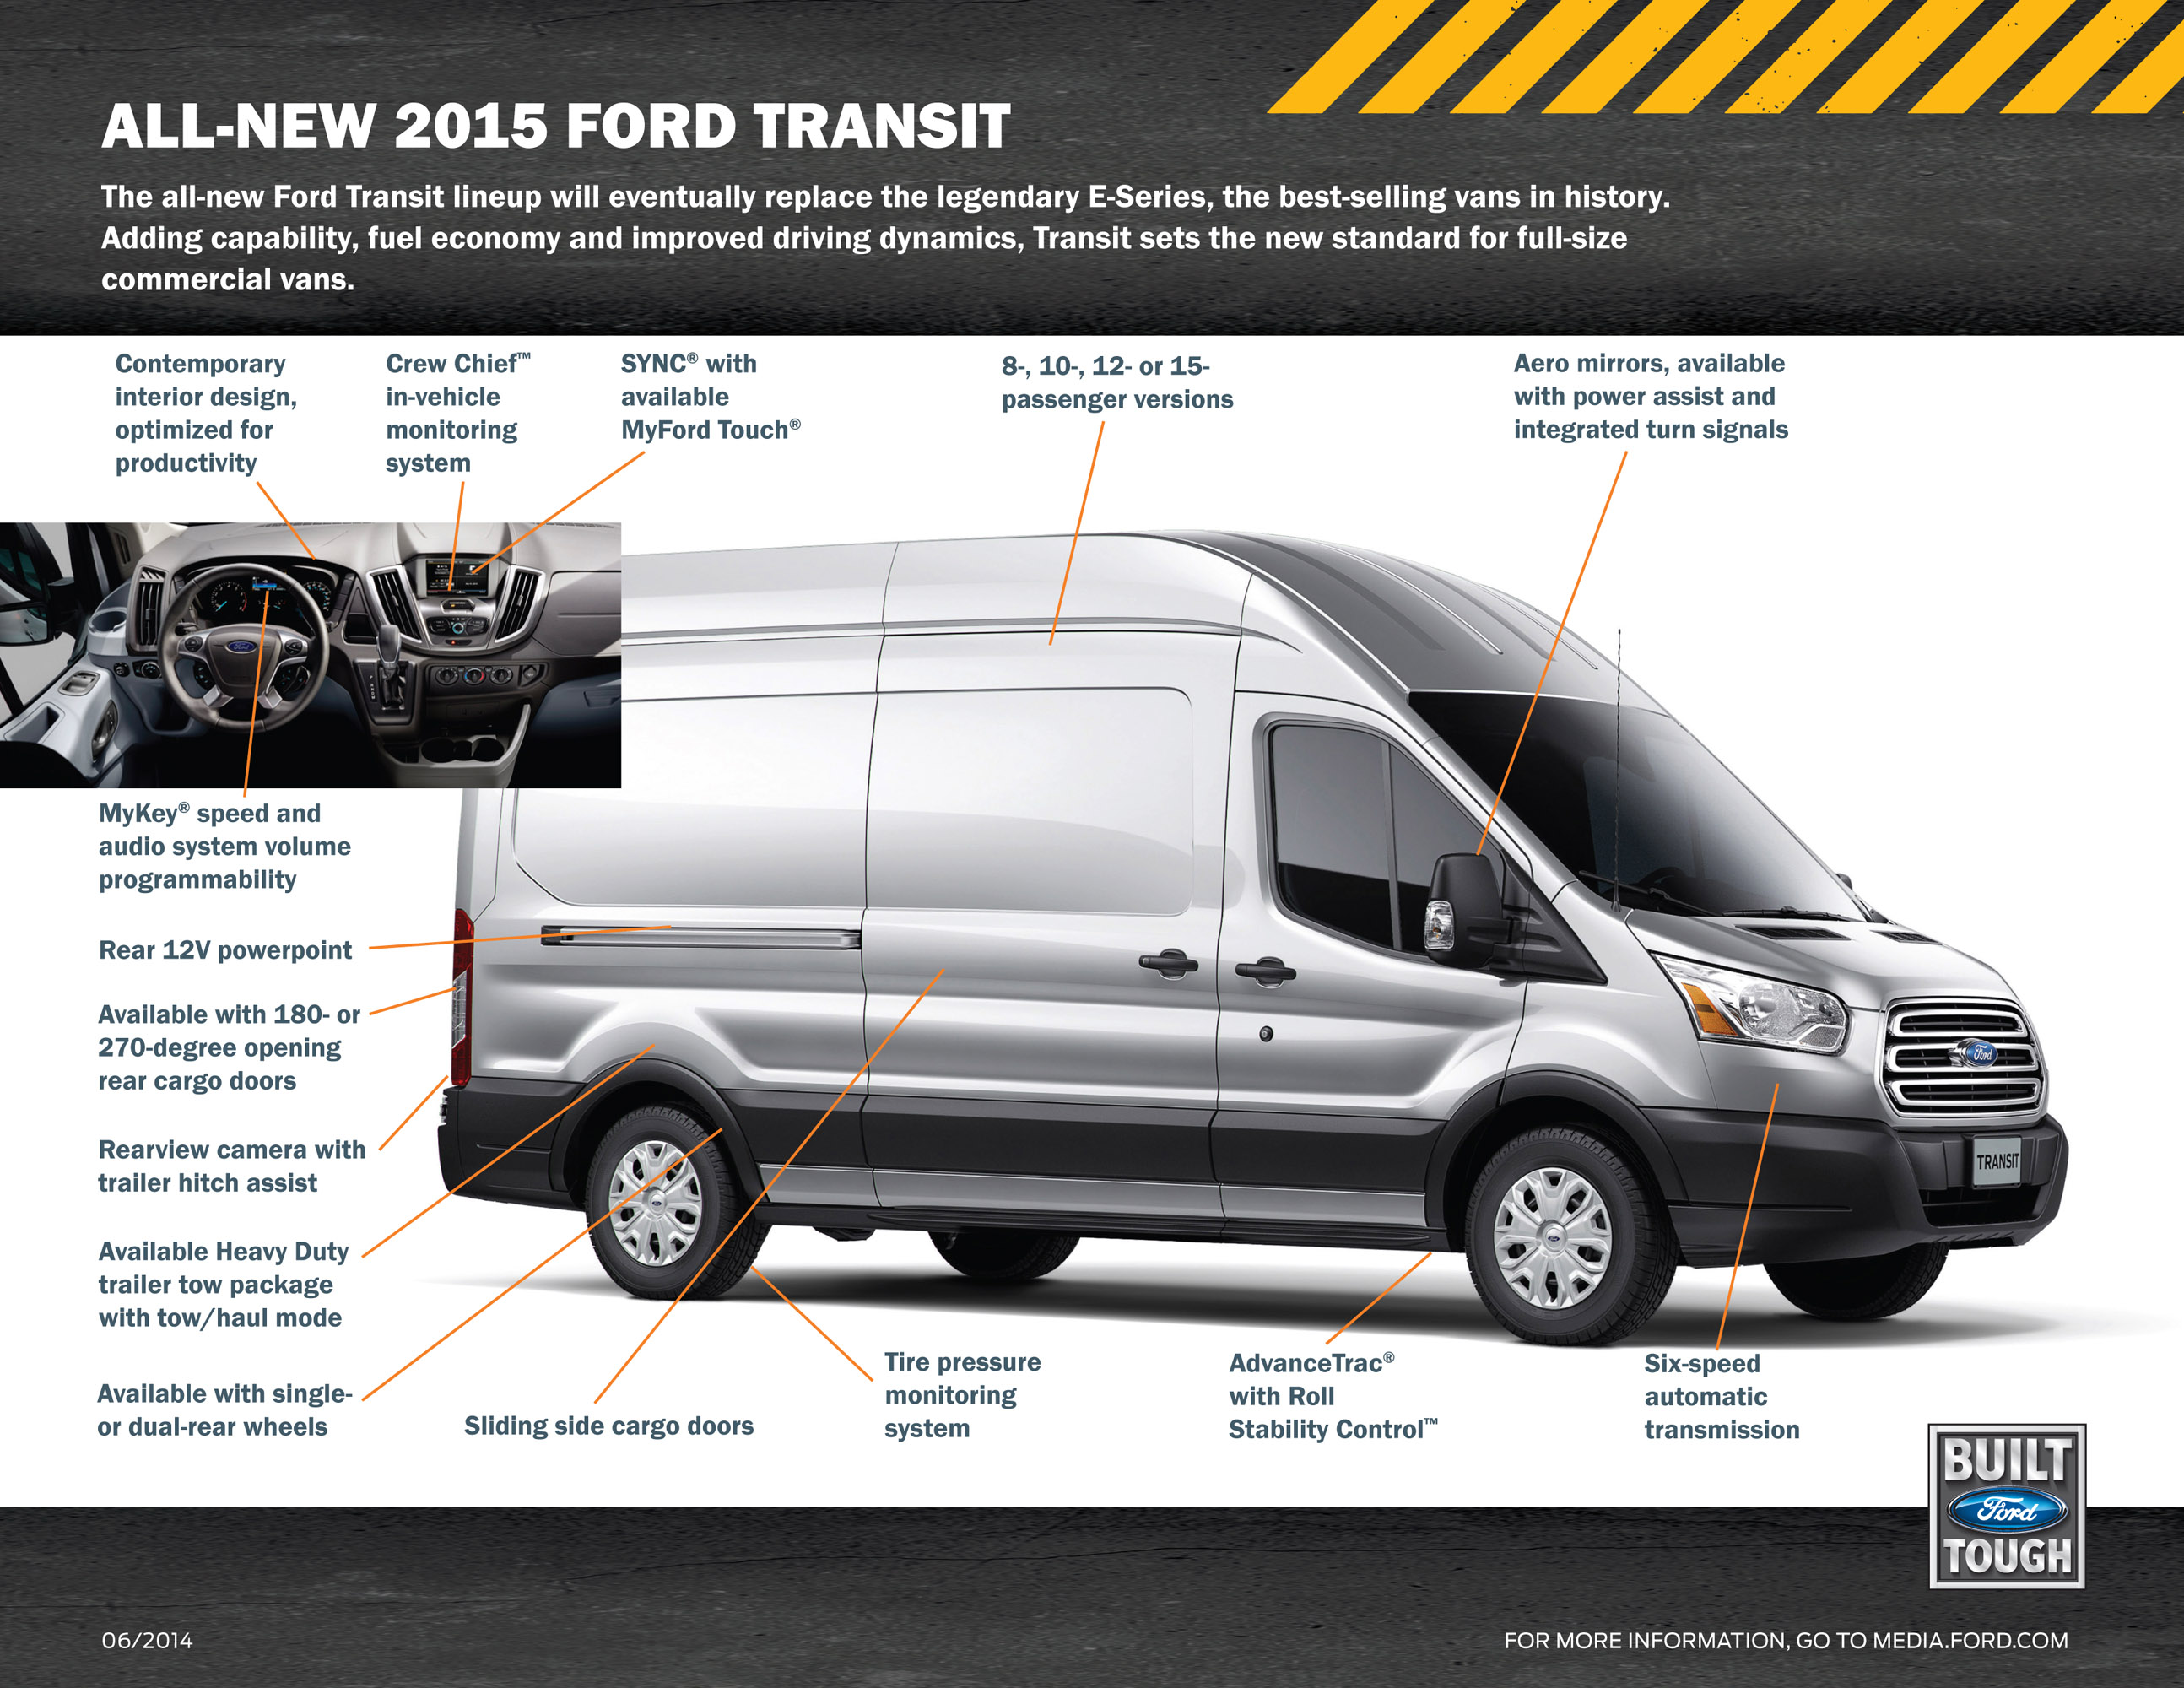 2015 Ford Transit Performance And Efficiency